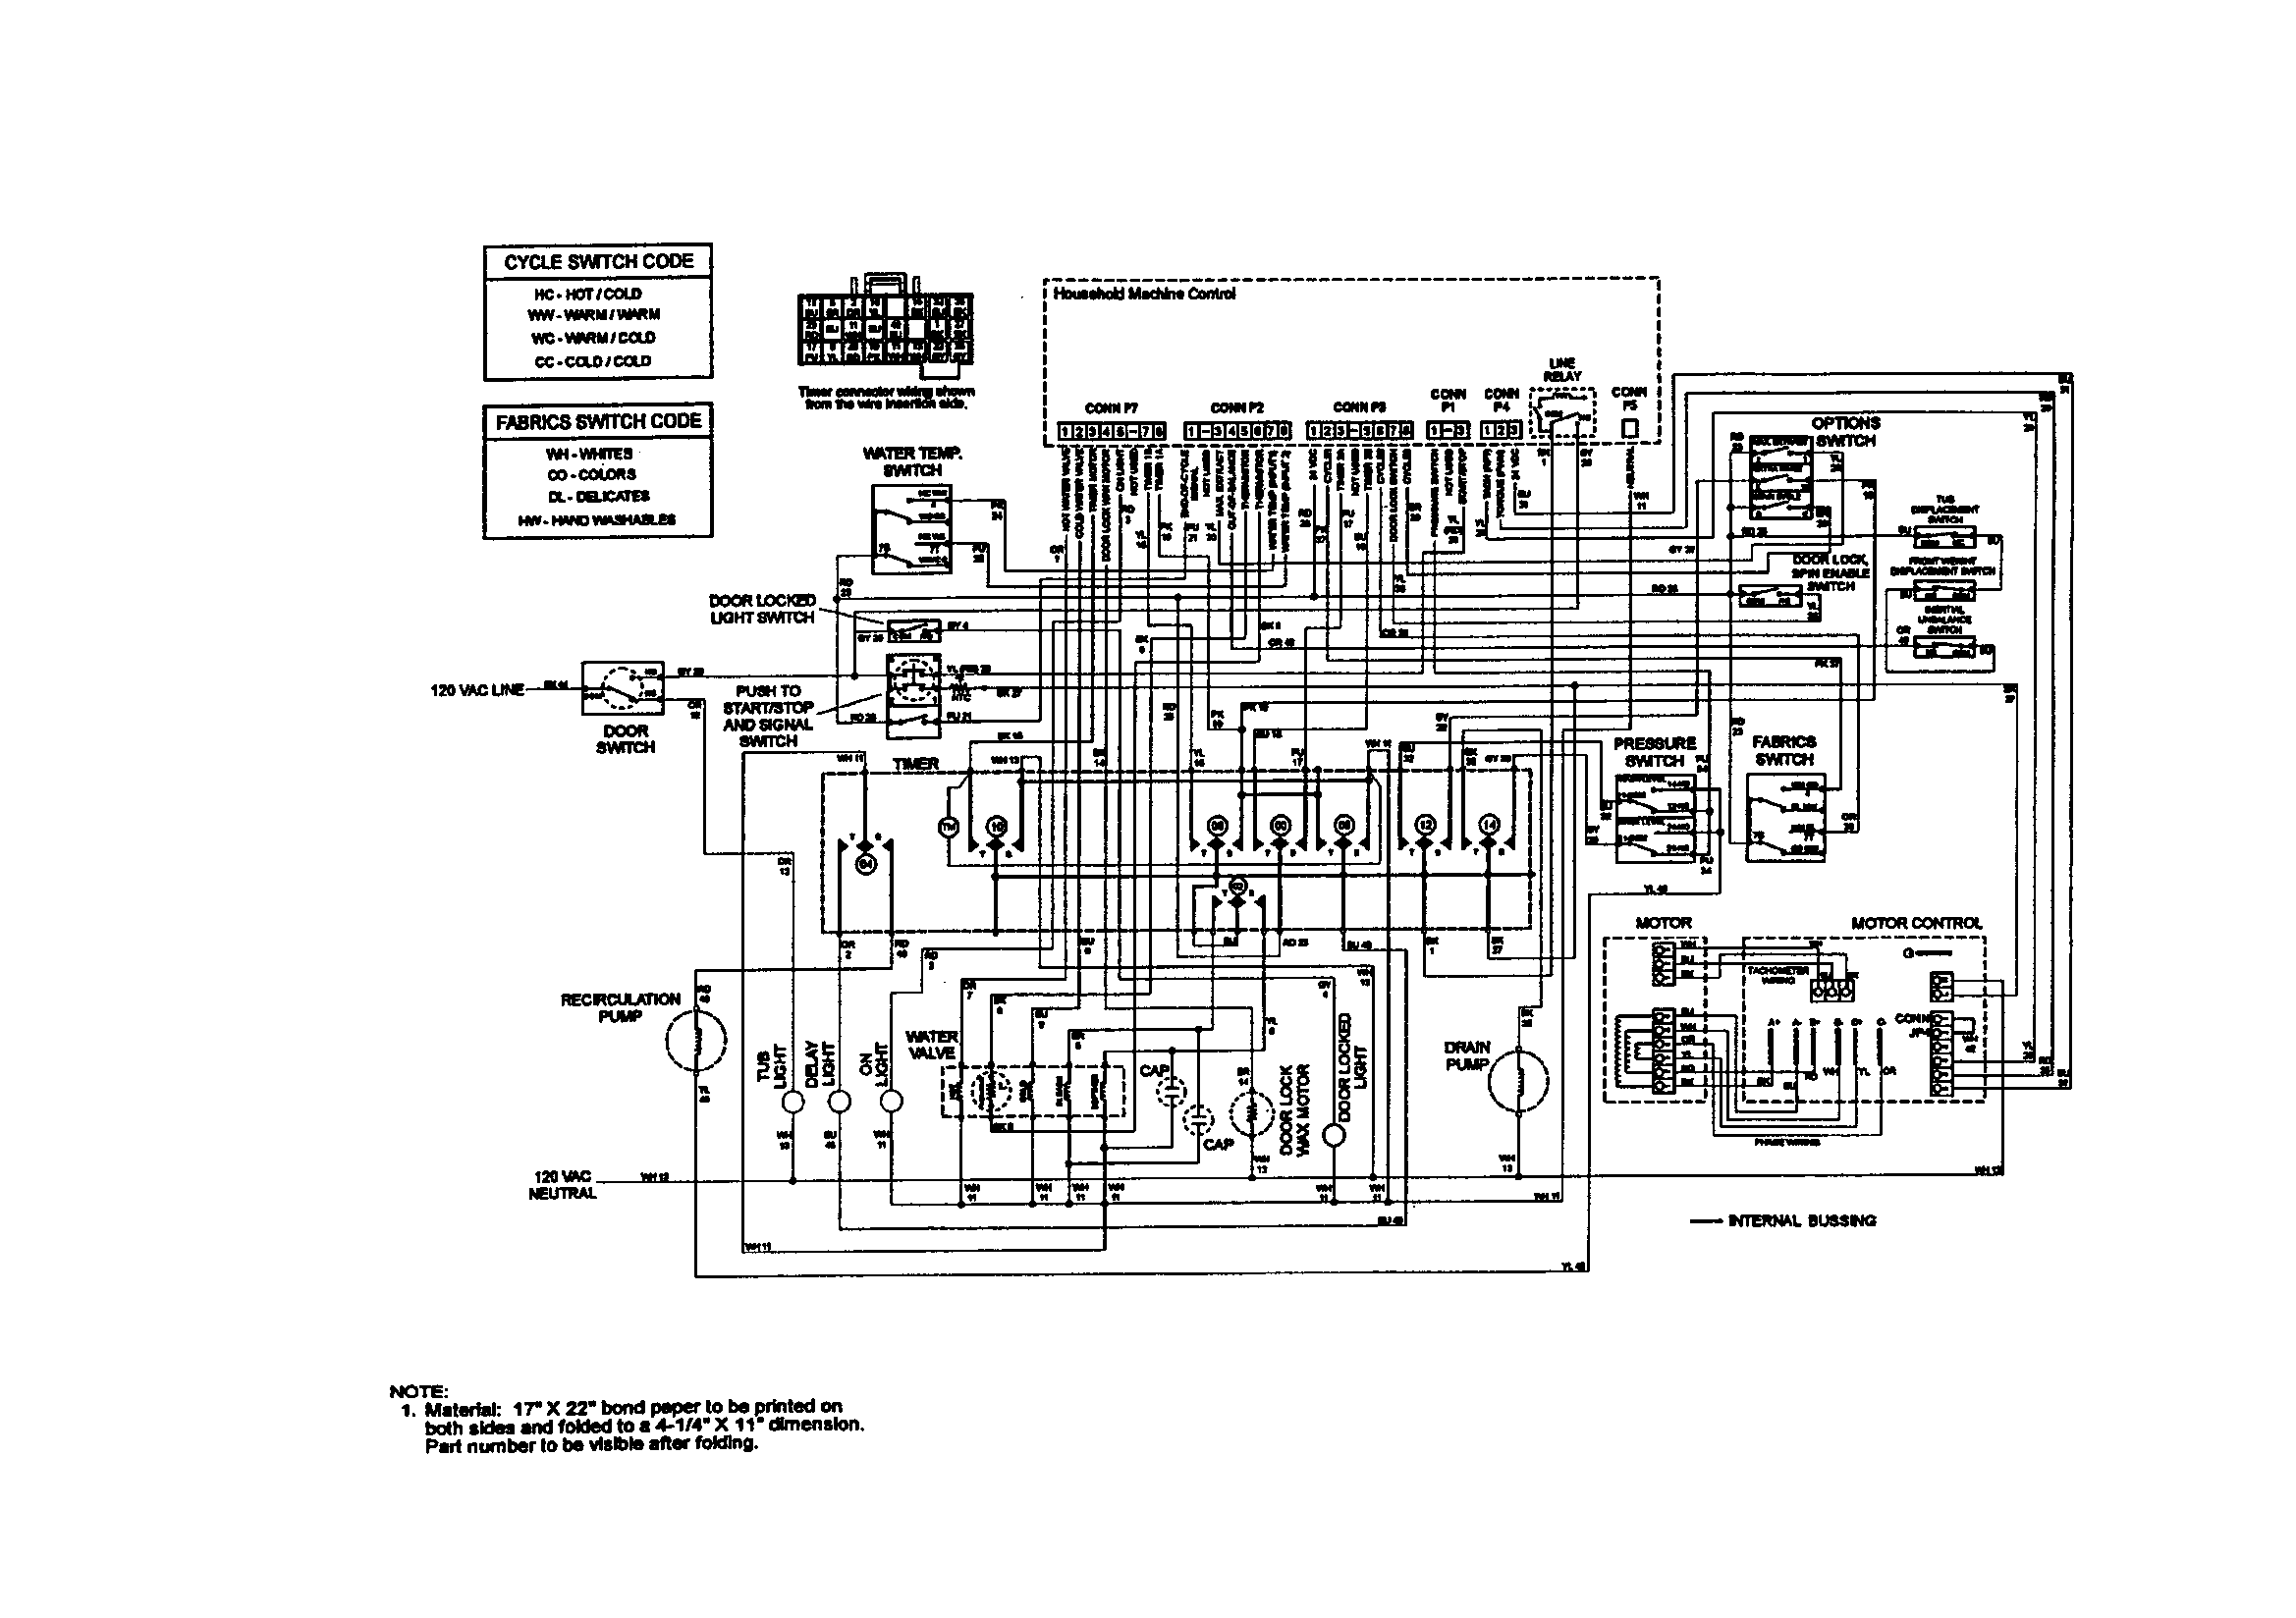 YORK FURNACE WIRING SCHEMATIC DIAGRAM OF GAS - Auto ... on